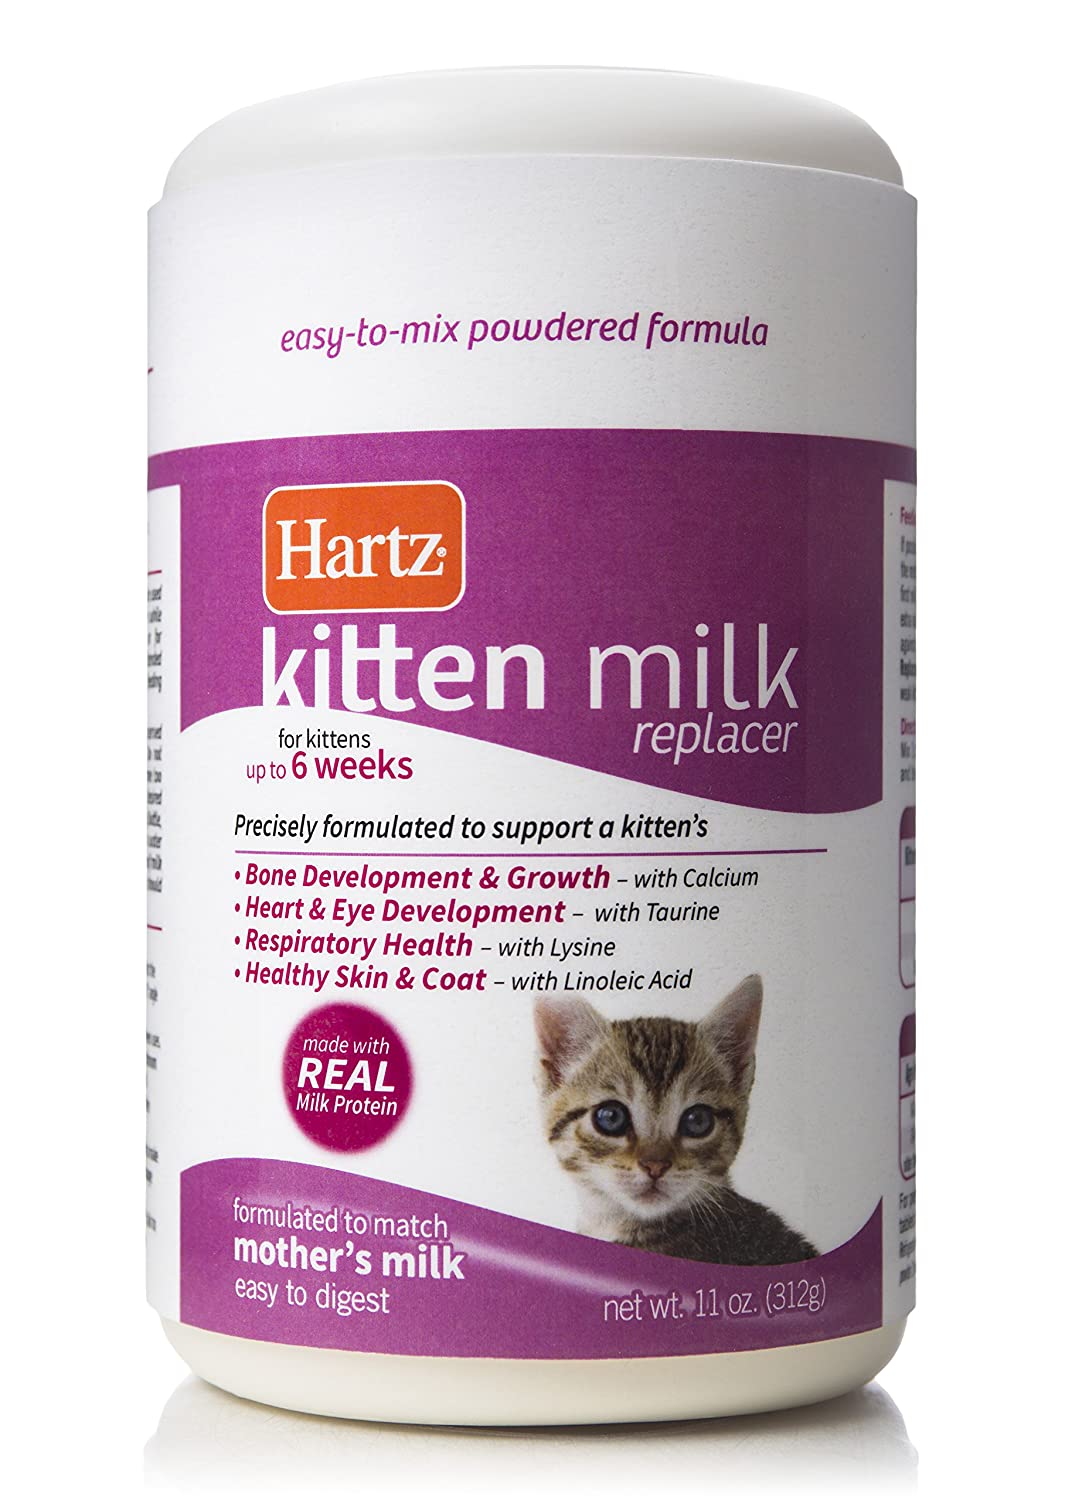 Amazon hartz powdered milk replacer formula for kittens amazon hartz powdered milk replacer formula for kittens pet supplies nvjuhfo Image collections